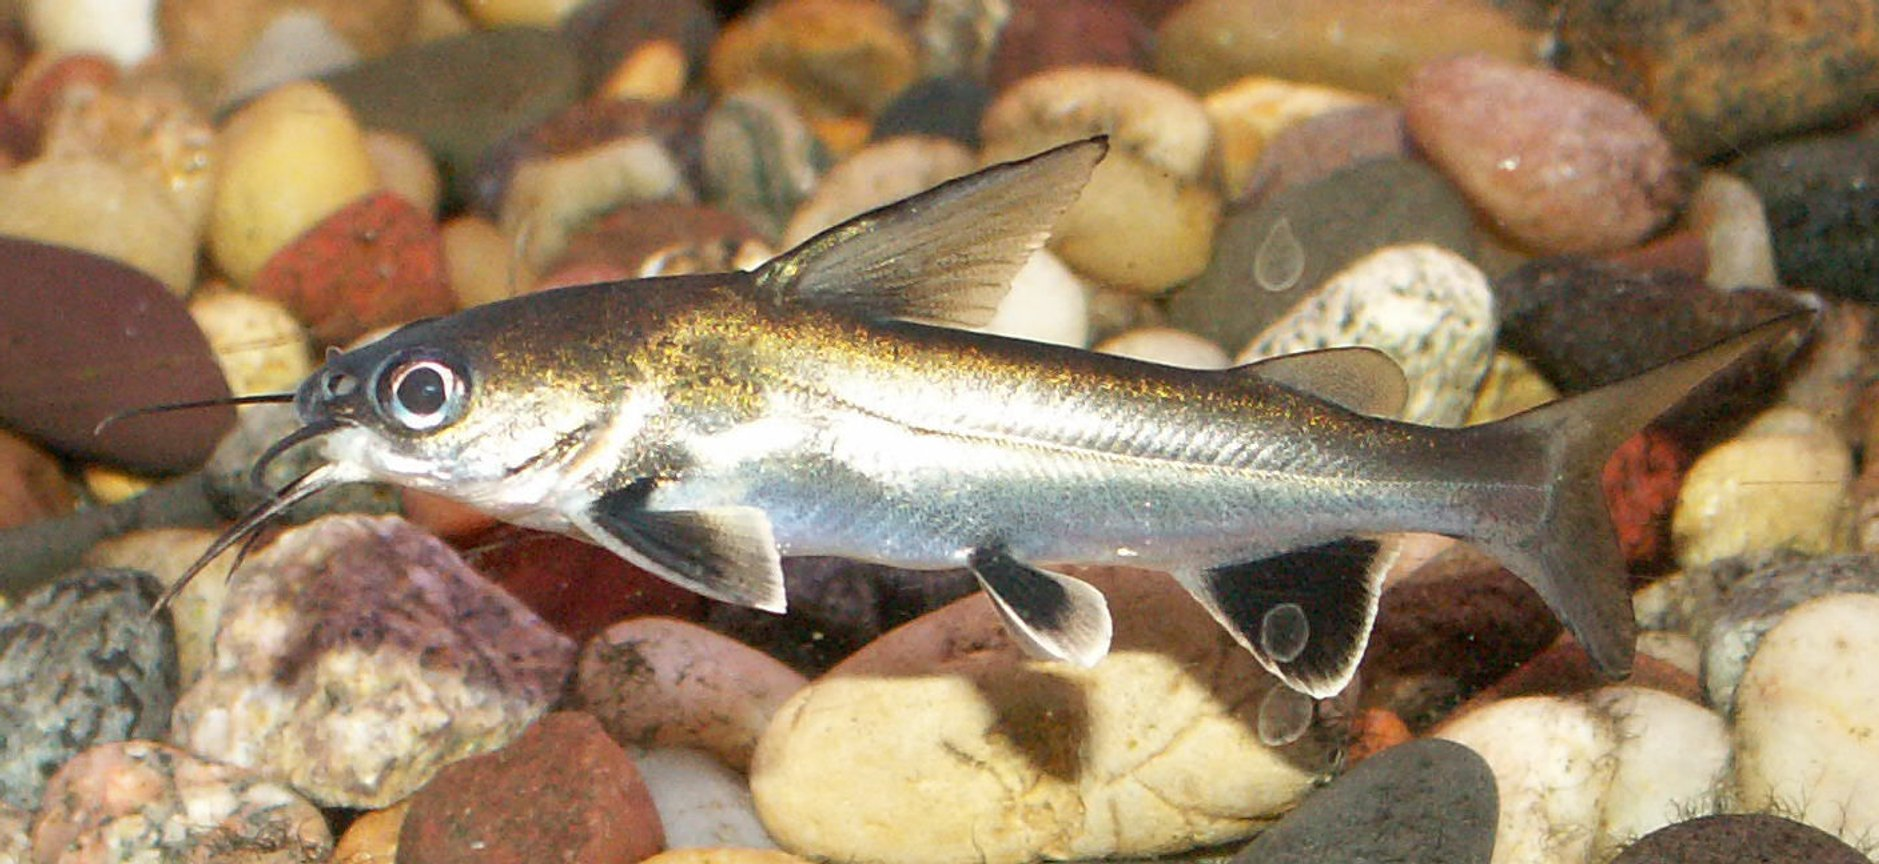 freshwater fish - hexanematichthys seemanni - silver-tipped shark stocking in 110 gallons tank - Silver Tipped Shark